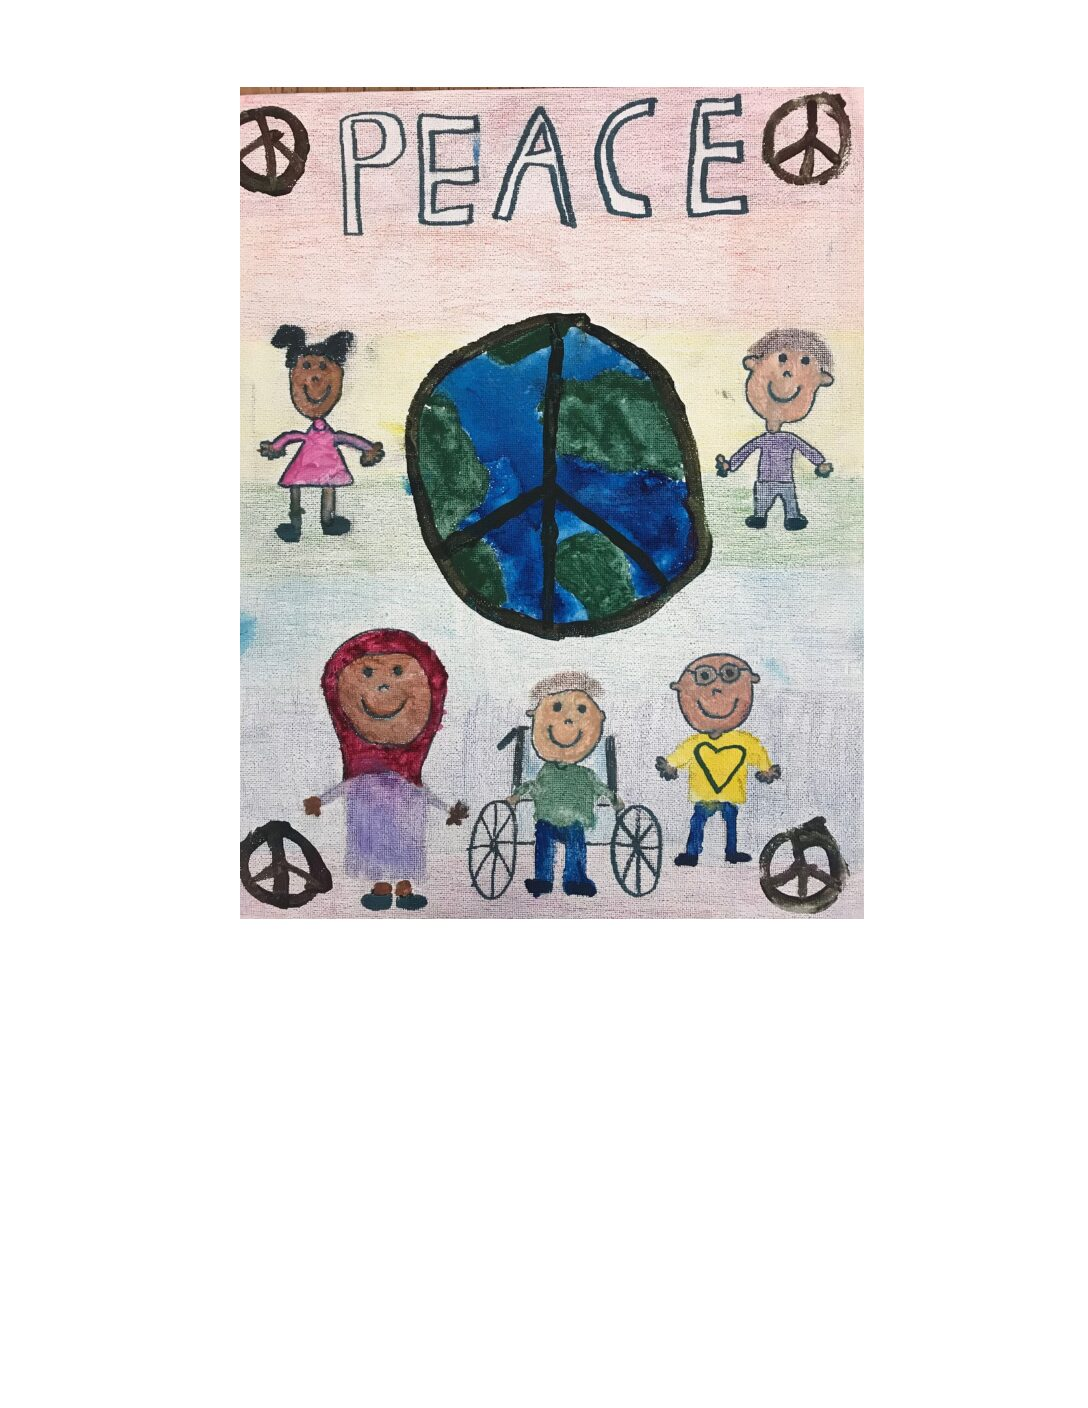 Visionary Peace Youth Art exhibit